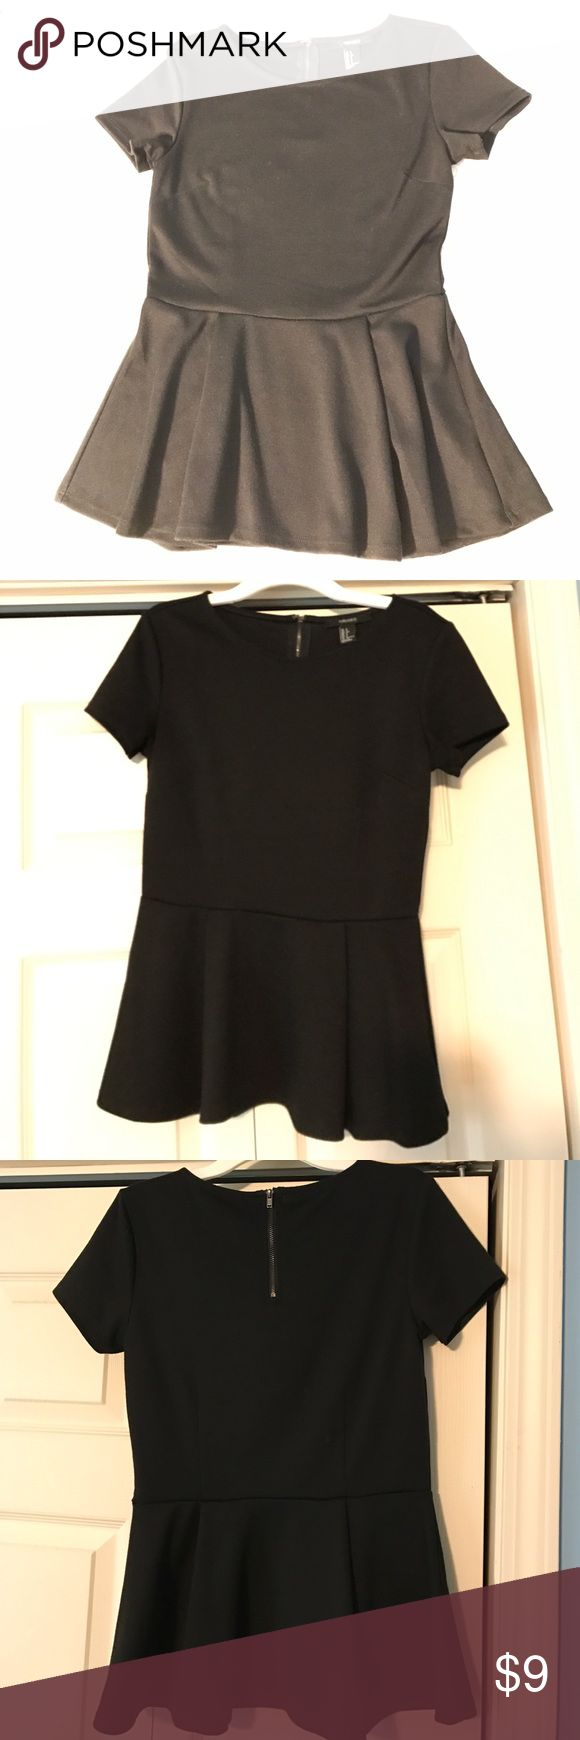 """Black Short-sleeve Peplum Top This black peplum would look beautiful with jeans or a skirt. It's a quality made top and the peplum hits where it's most flattering. Has a zipper and clasp, which is rare to find on a top. Comfortable material and flattering silhouette. Length is 24"""" Forever 21 Tops"""